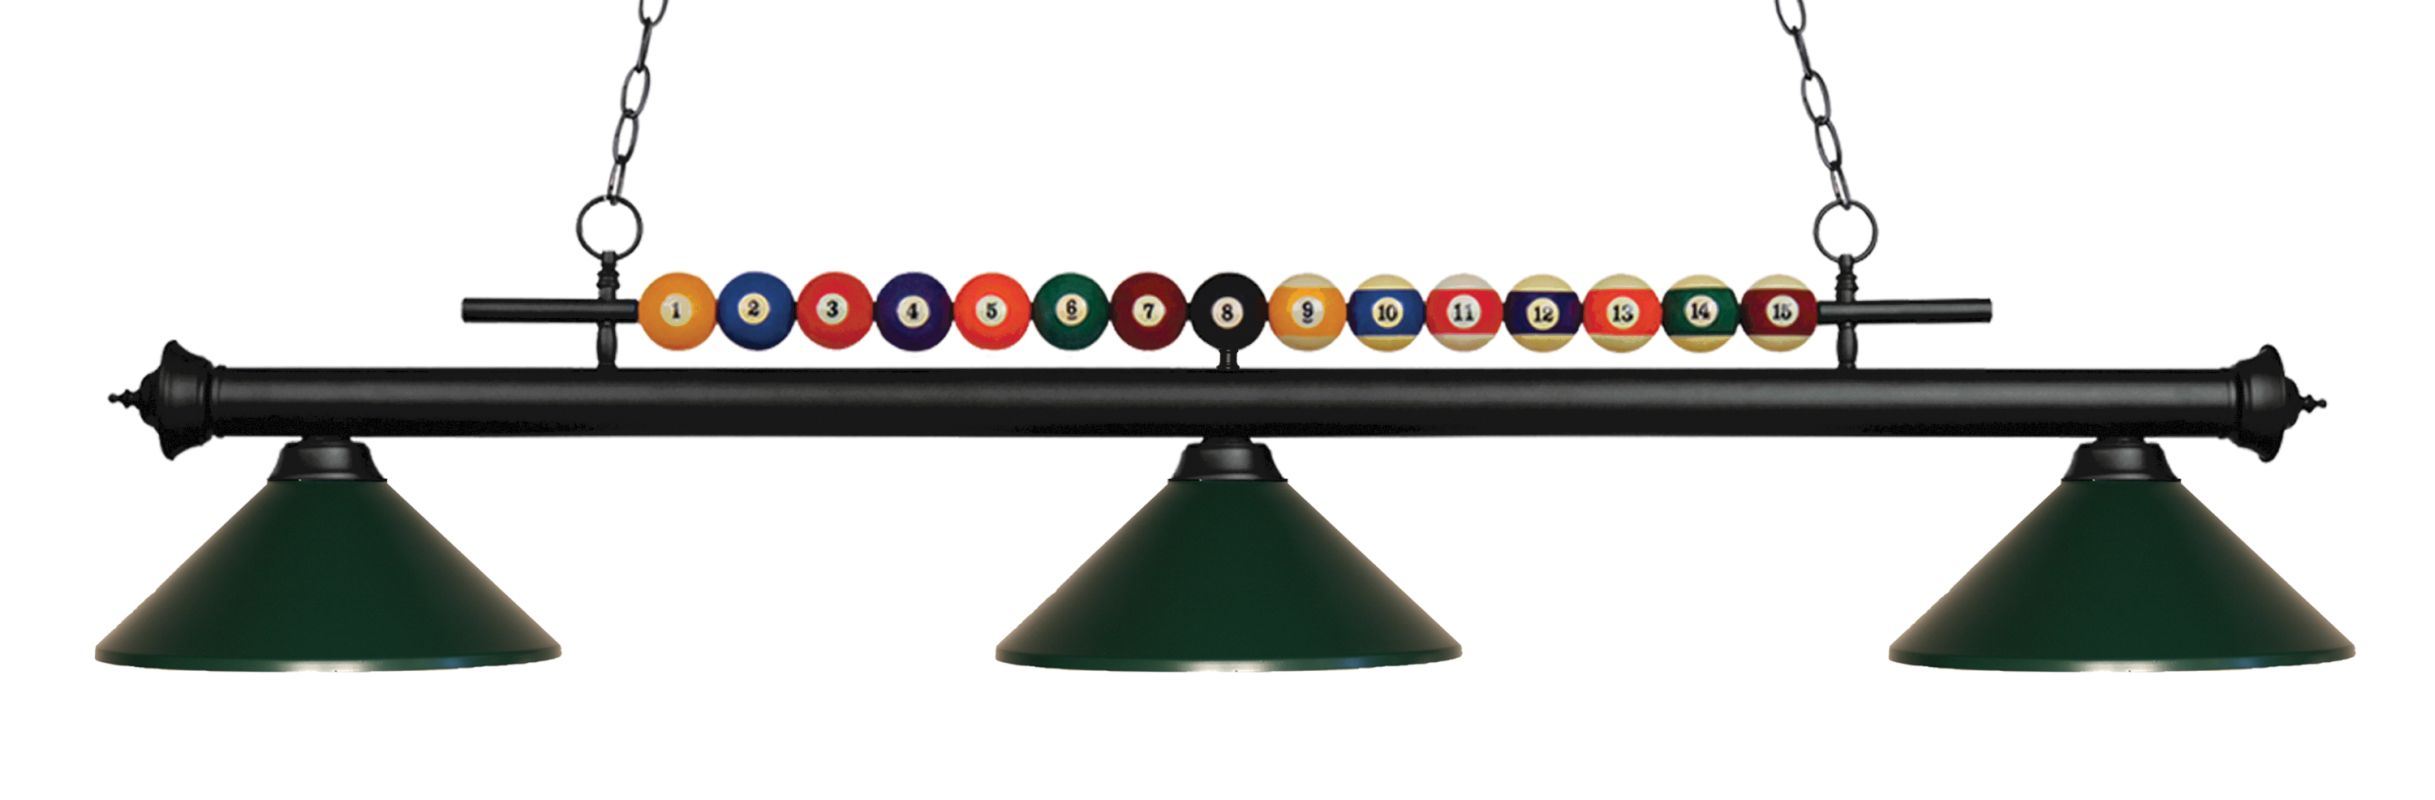 Z-Lite 170-MDG Shark 3 Light Billiard Chandelier with Green Metal Sale $434.00 ITEM: bci2630366 ID#:170MB-MDG UPC: 685659049275 :